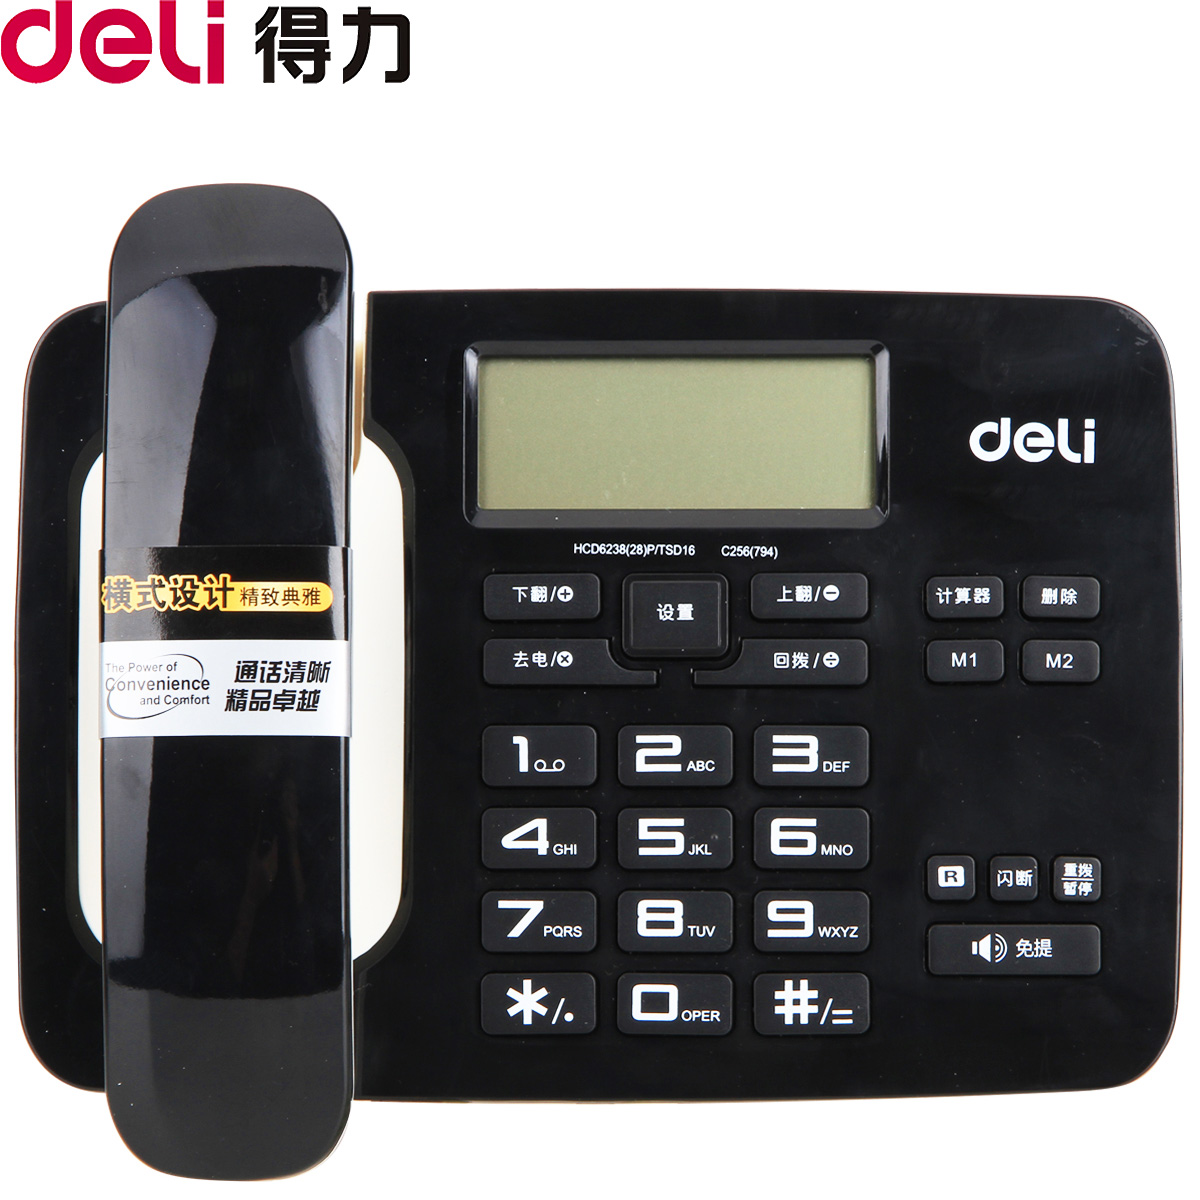 Deli 794 fixed telephone landline telephone caller id telephone home office business phone